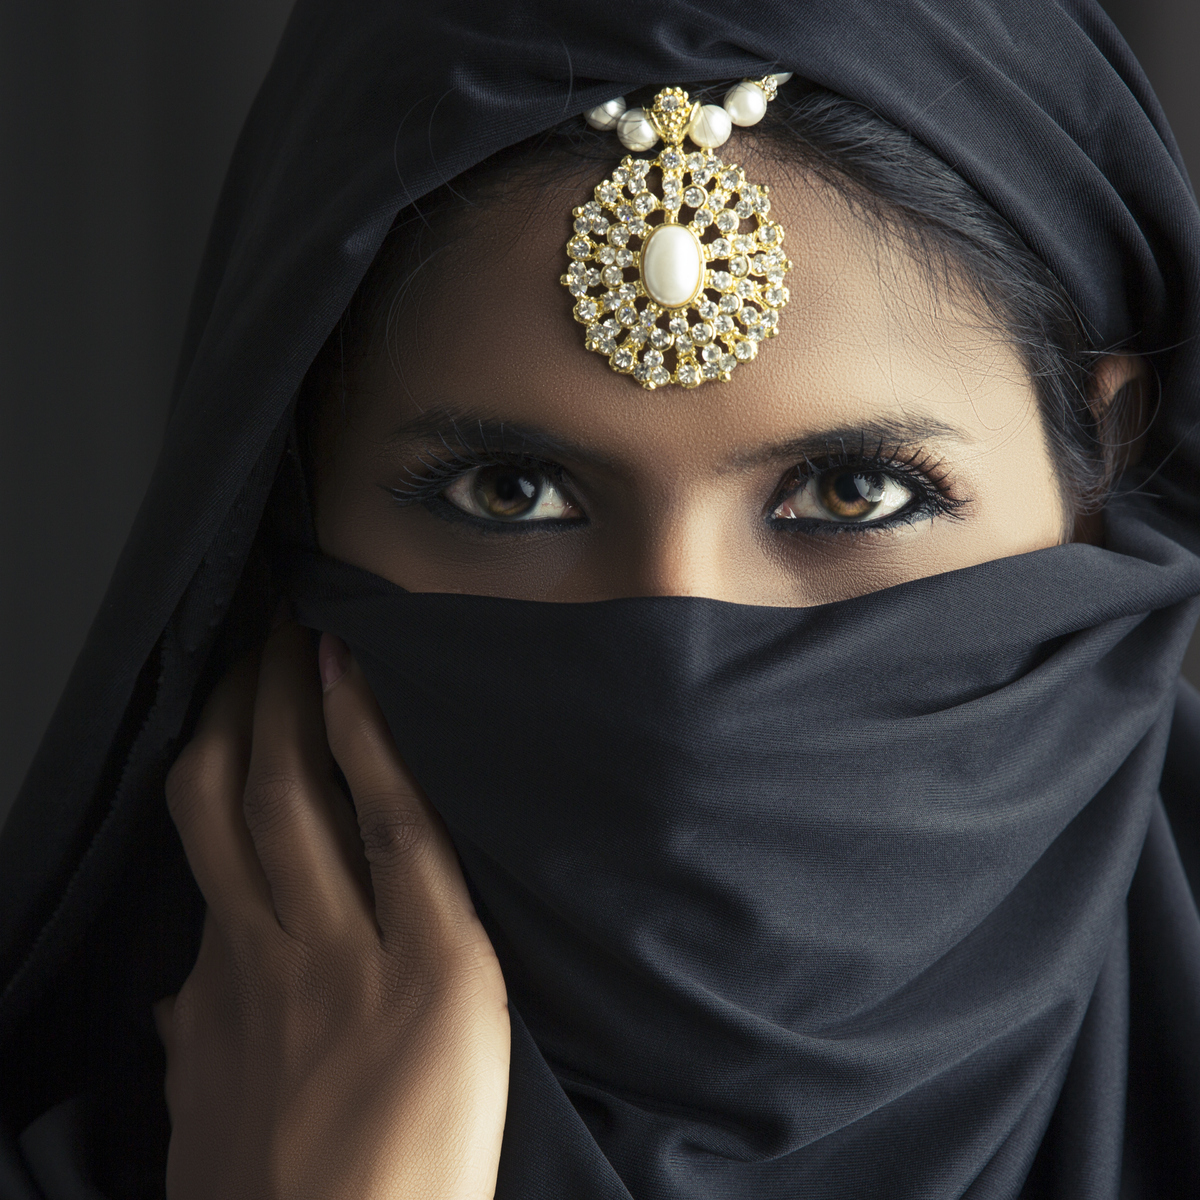 islamic women Find islamic clothing from a vast selection of diverse women's clothing get great deals on ebay.